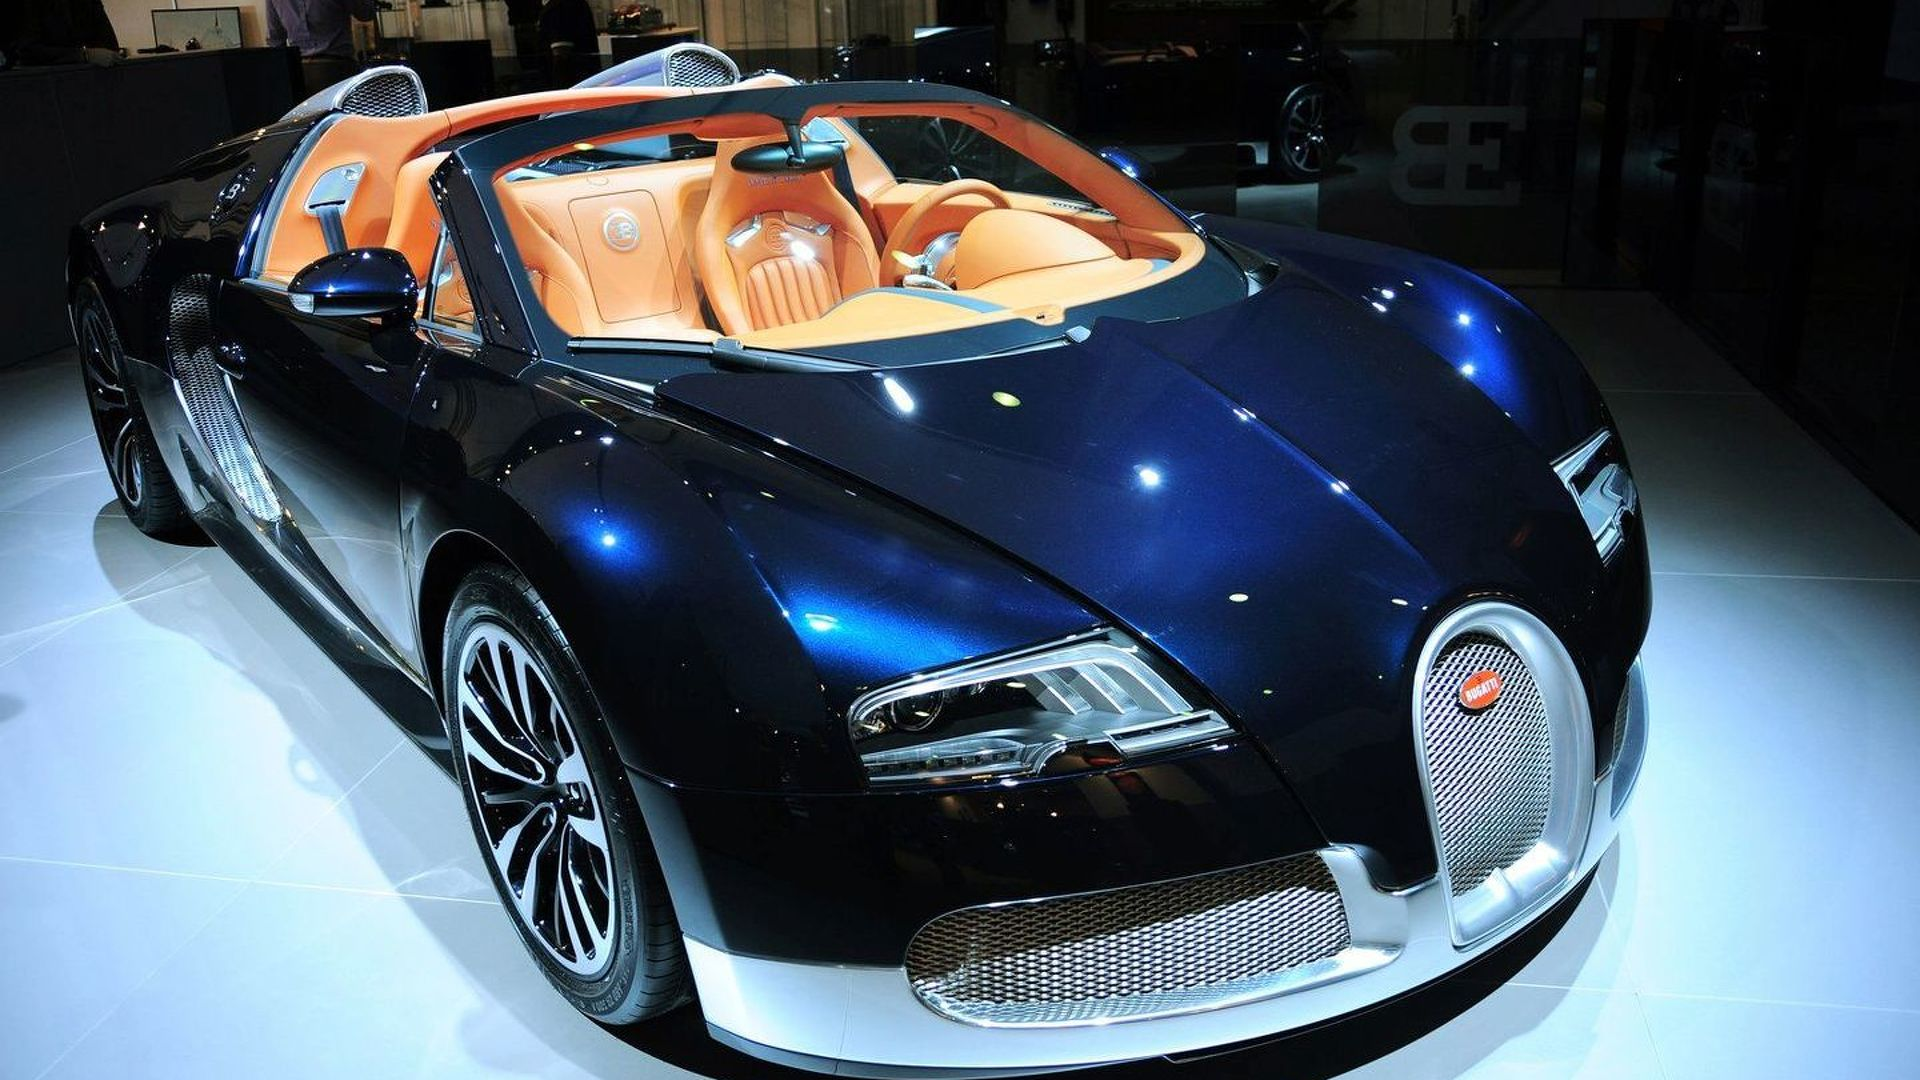 bugattigold luxury diamond bugatti images news rally car rush gold